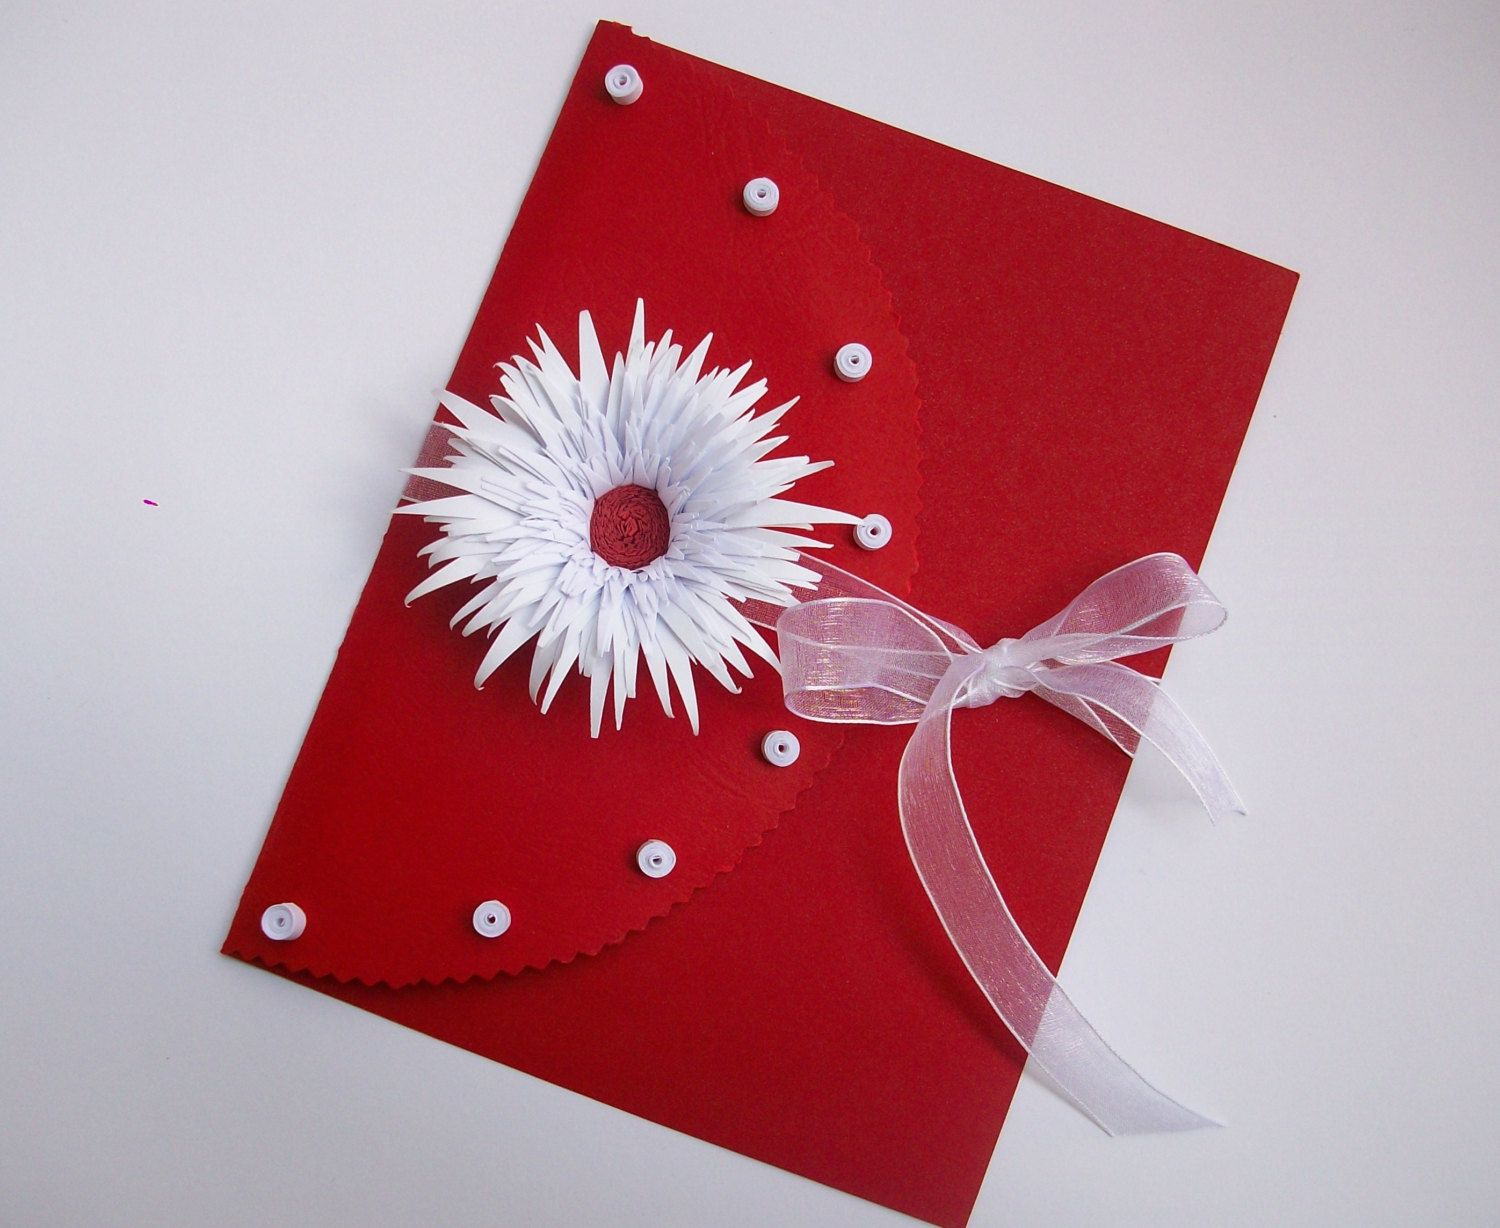 Quilling card wedding greeting card valentines greeting card quilling card wedding greeting card valentines greeting card valentines day handmade quilling kristyandbryce Images